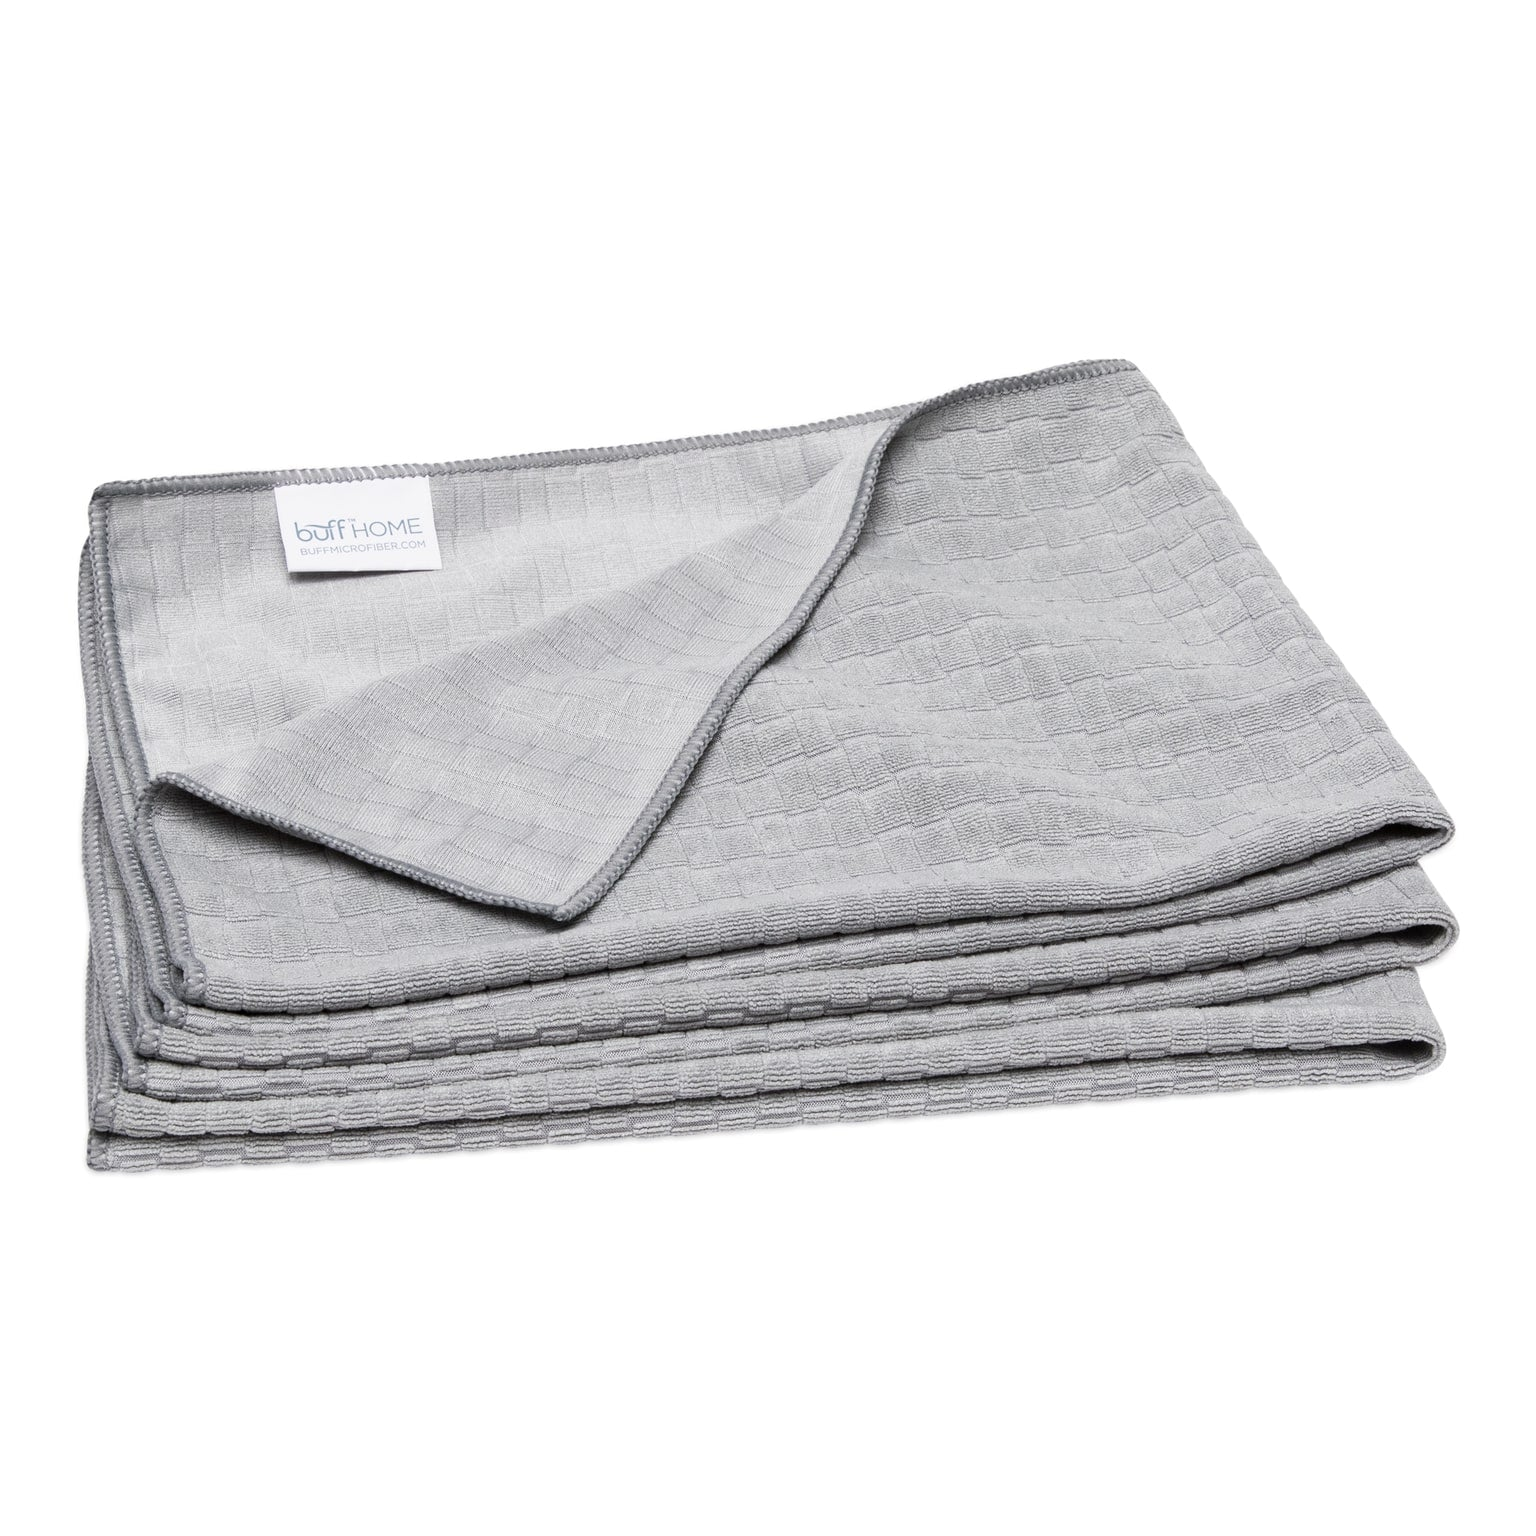 Microfiber Dish Drying Towels